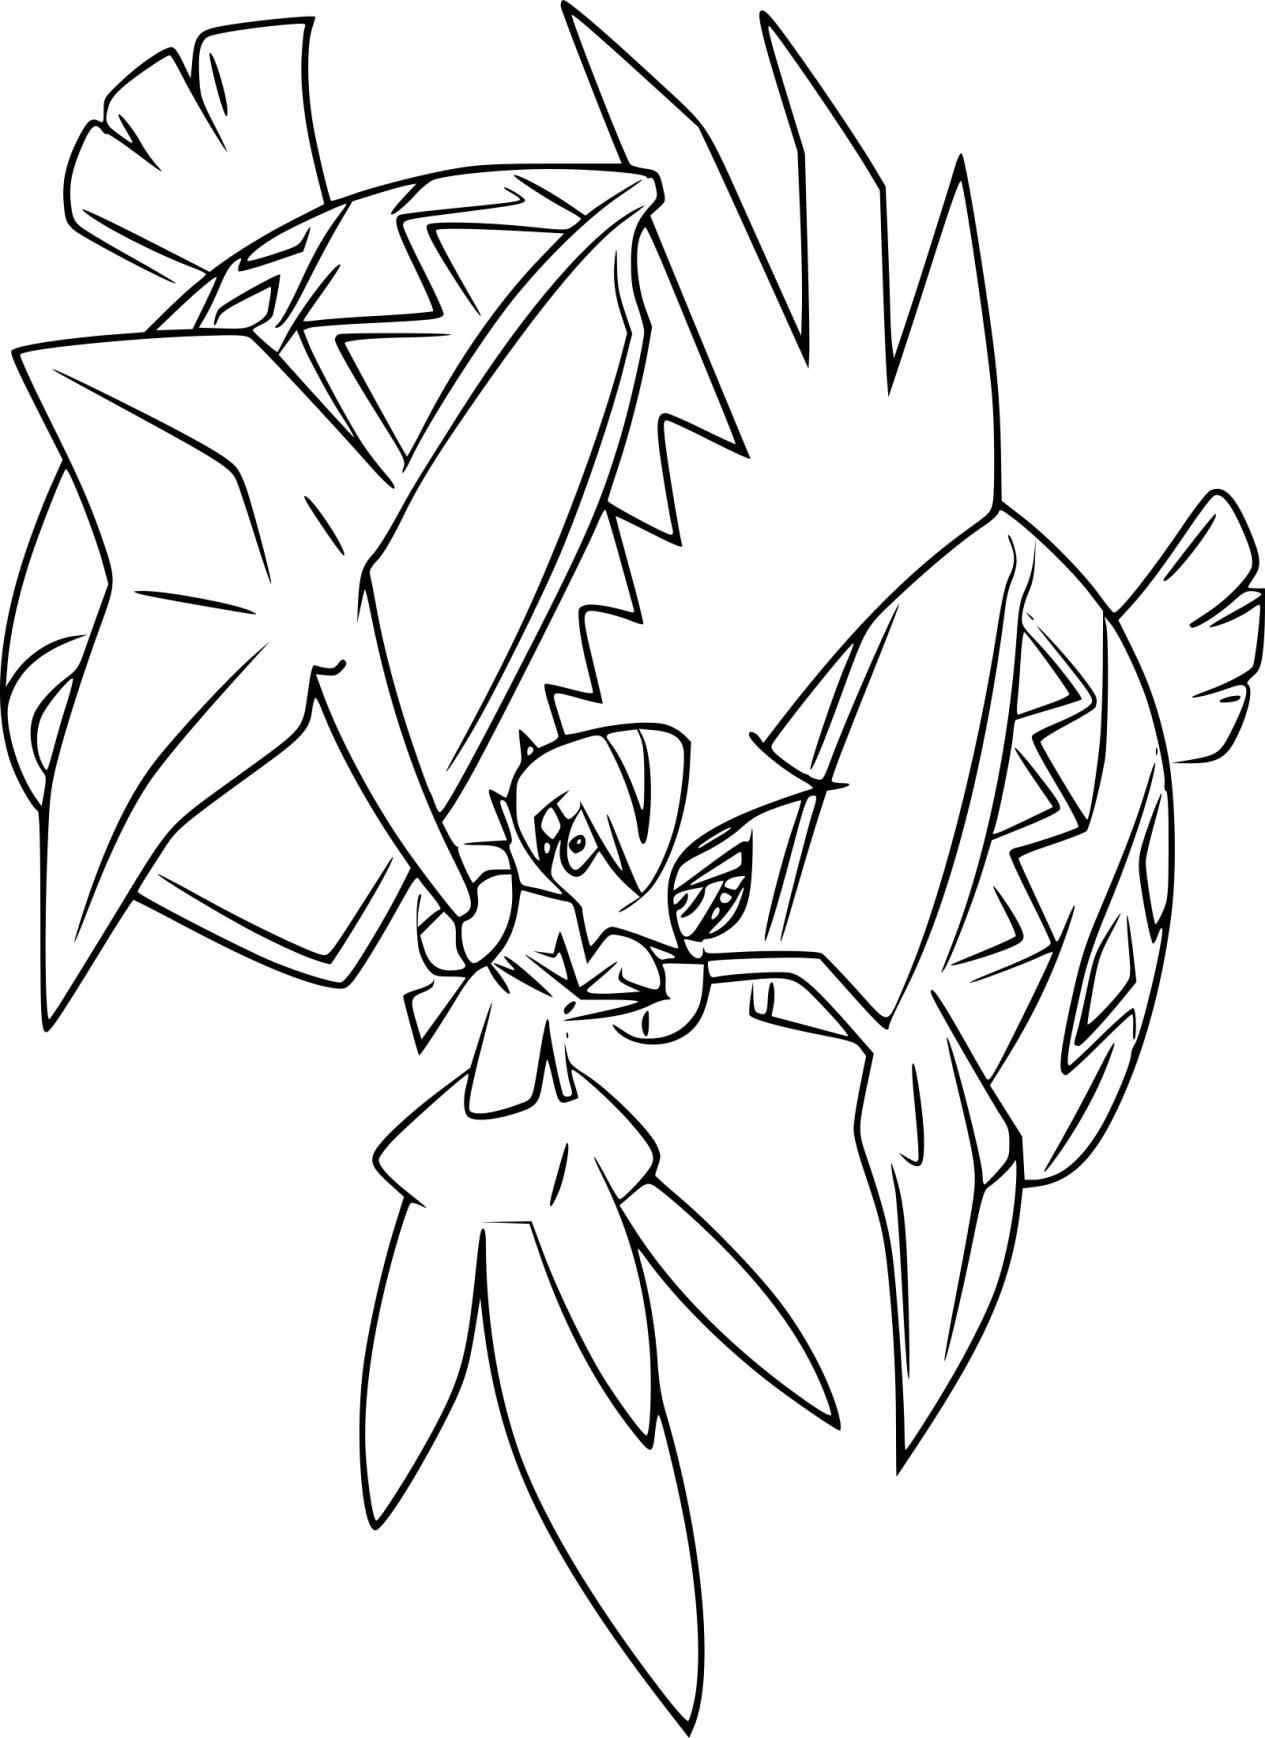 Pokemon Coloring Moon From The Thousand Photographs On Line Regarding Pokemon Coloring Moon Moon Coloring Pages Pokemon Coloring Pages Cartoon Coloring Pages